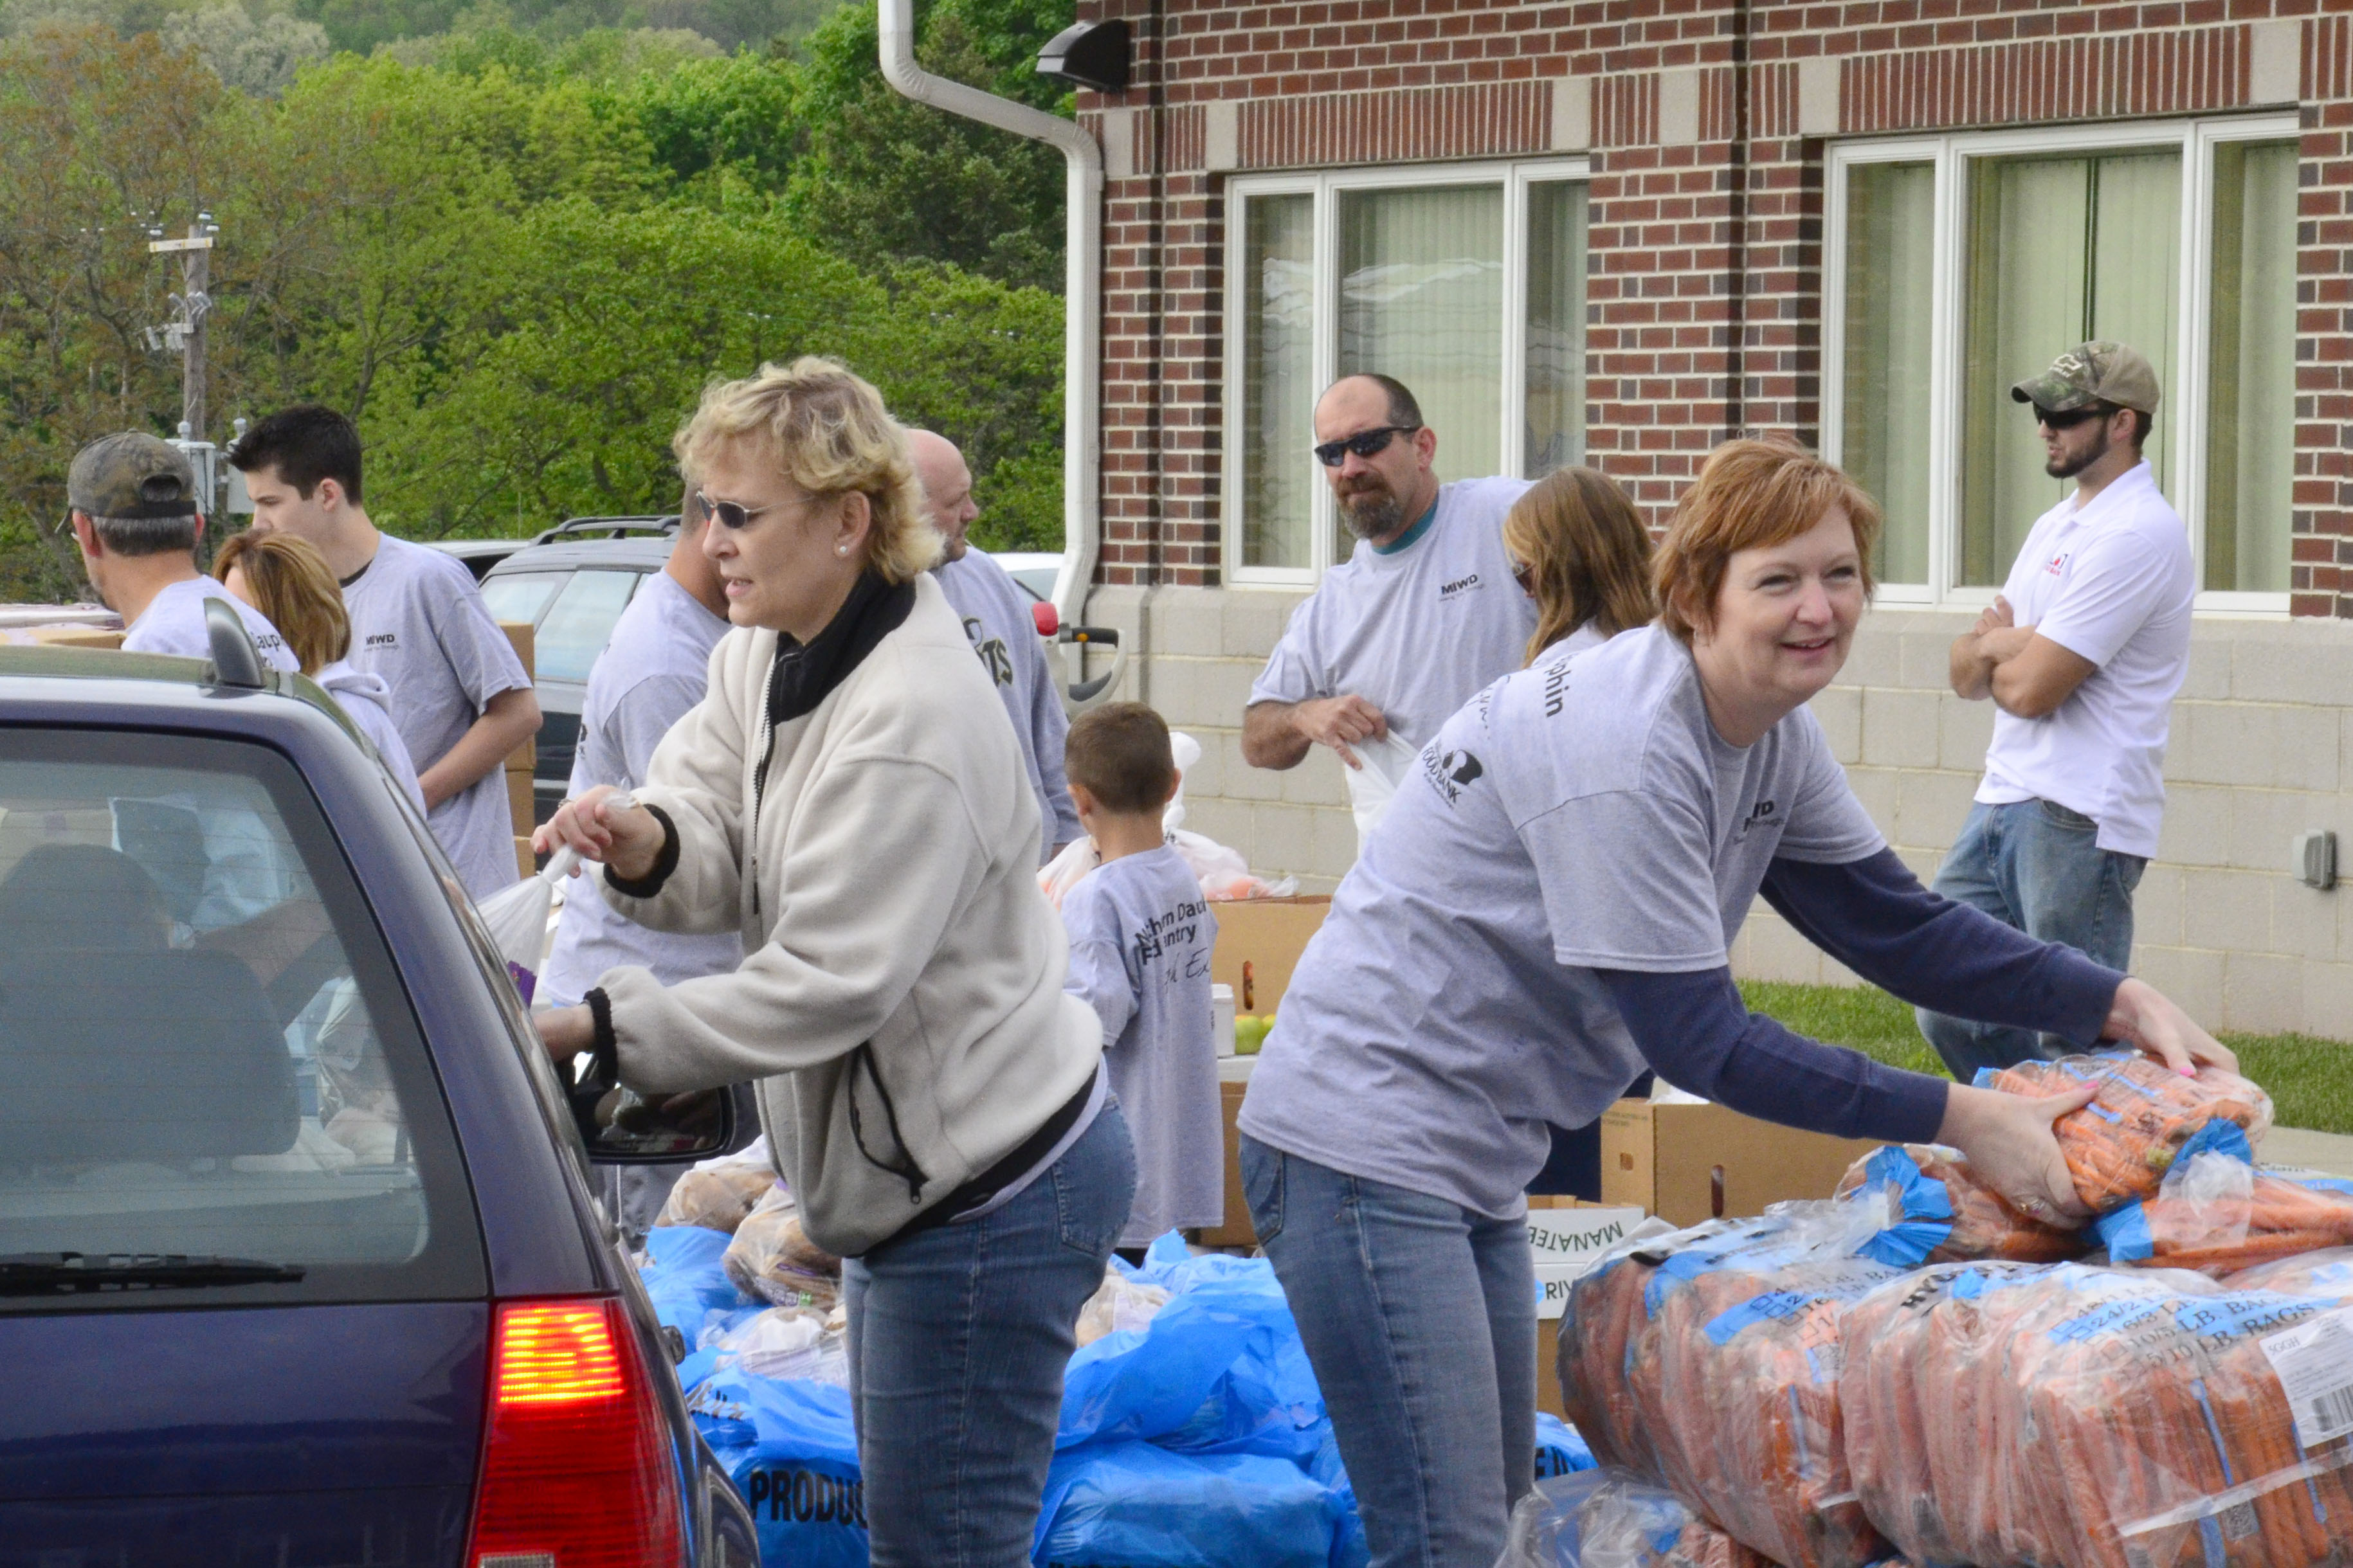 MI Foundation volunteers by distributing fresh produce to local families